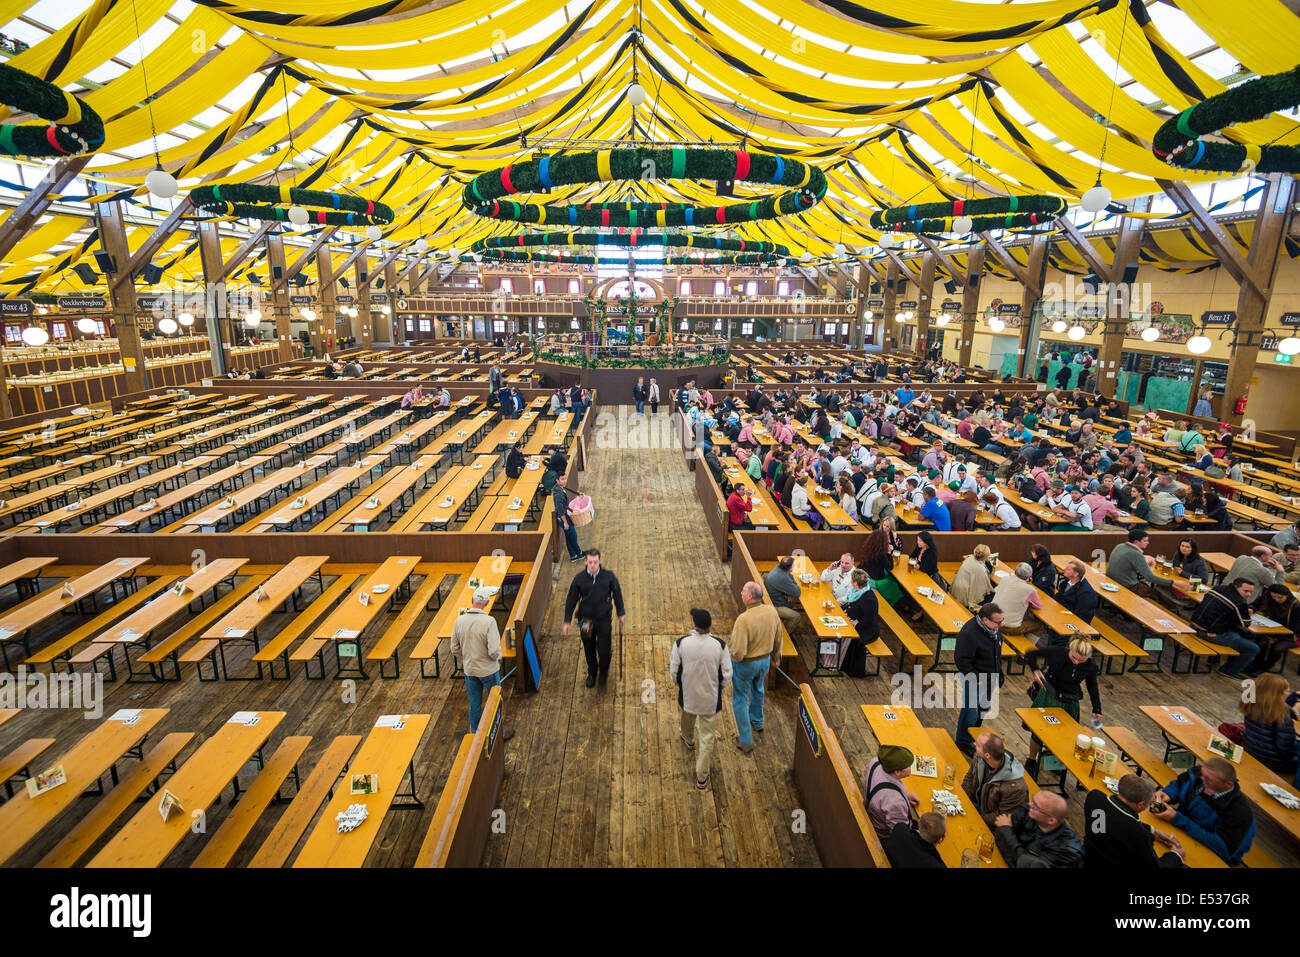 The Paulaner Beer Tent on the Theresienwiese Oktoberfest fair grounds. - Stock Image & Beer Tent Stock Photos u0026 Beer Tent Stock Images - Alamy